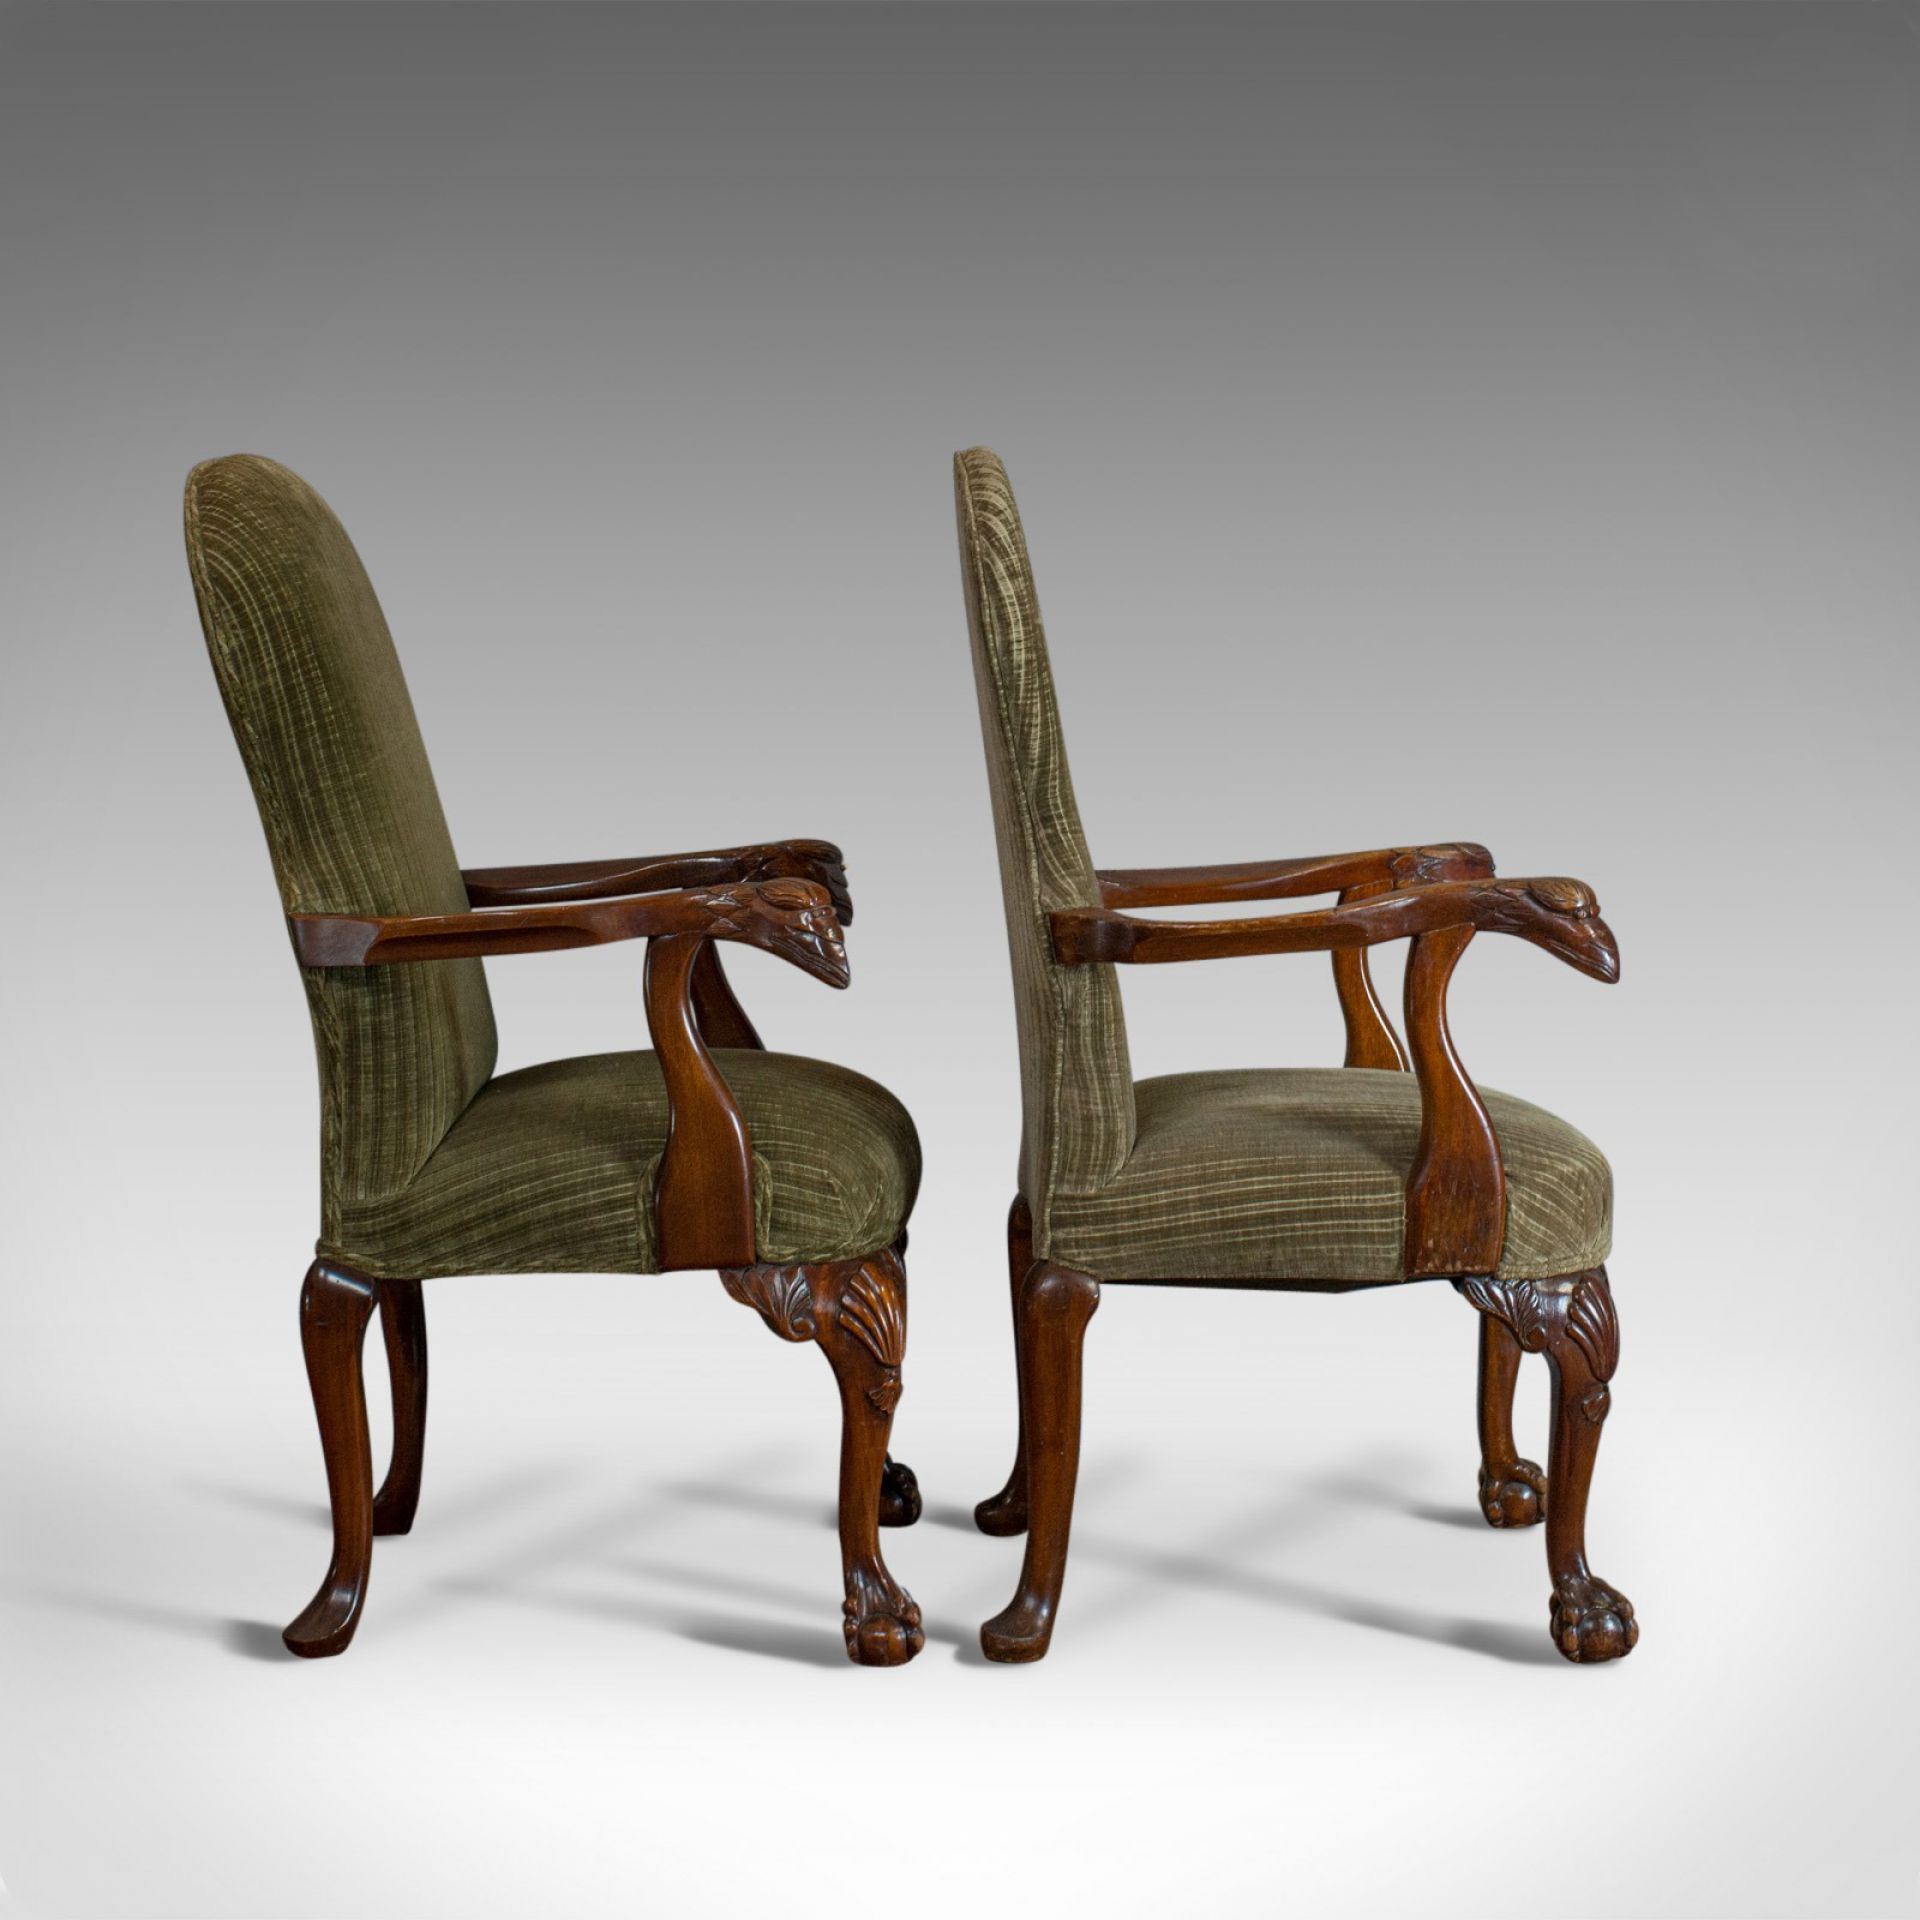 Pair of Victorian Revival Elbow Chairs, Mahogany, Lounge, Armchairs C20th